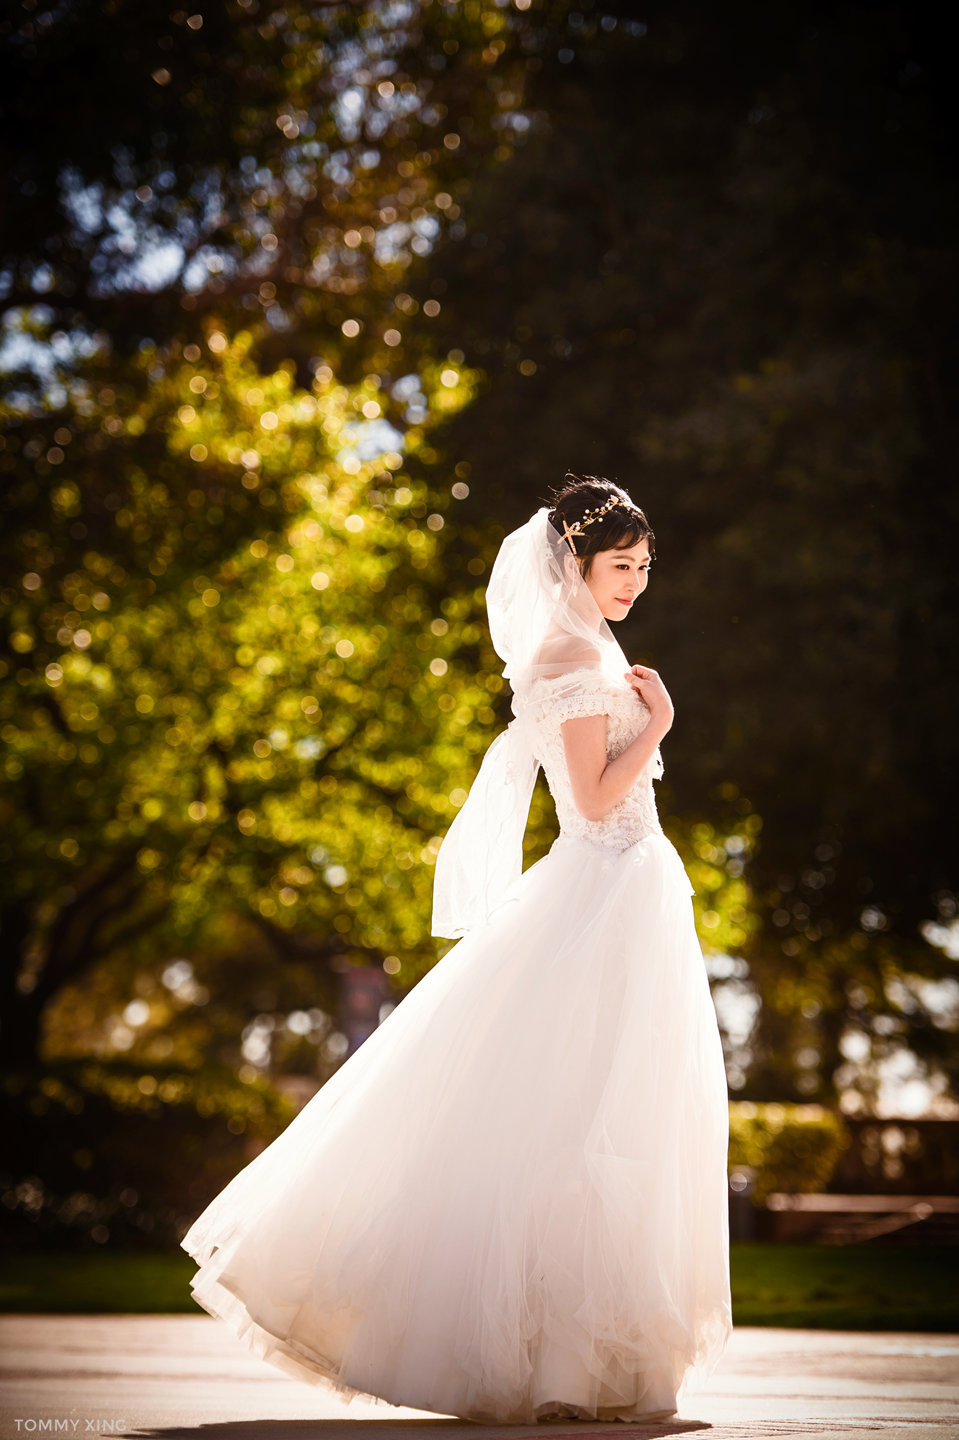 洛杉矶旧金山婚礼婚纱照摄影师 Tommy Xing Los Angeles wedding photographer 11.jpg